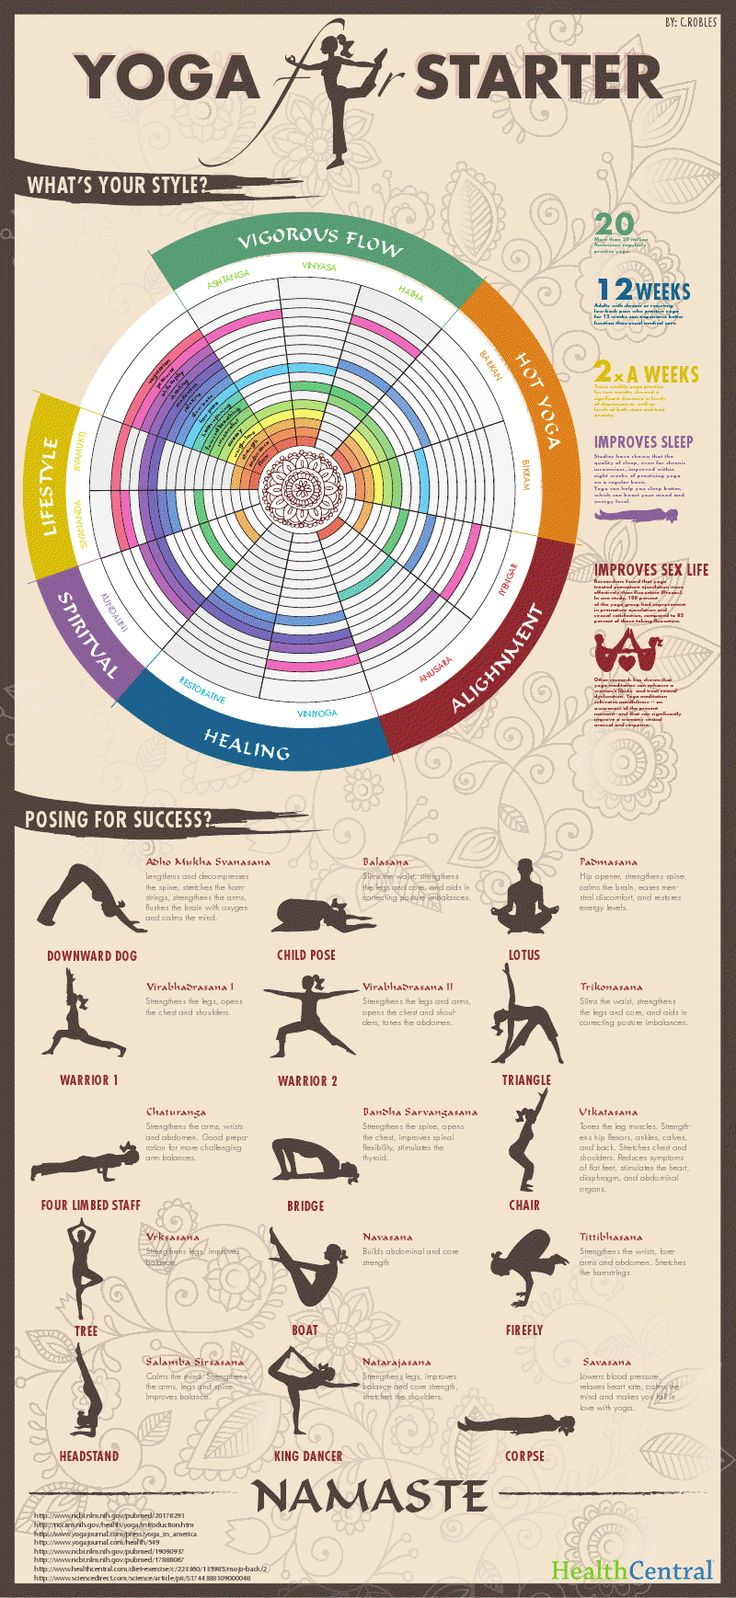 This colorful info graphic gives a great beginner's overview to #Yoga #GetPostureFit #Postursizer